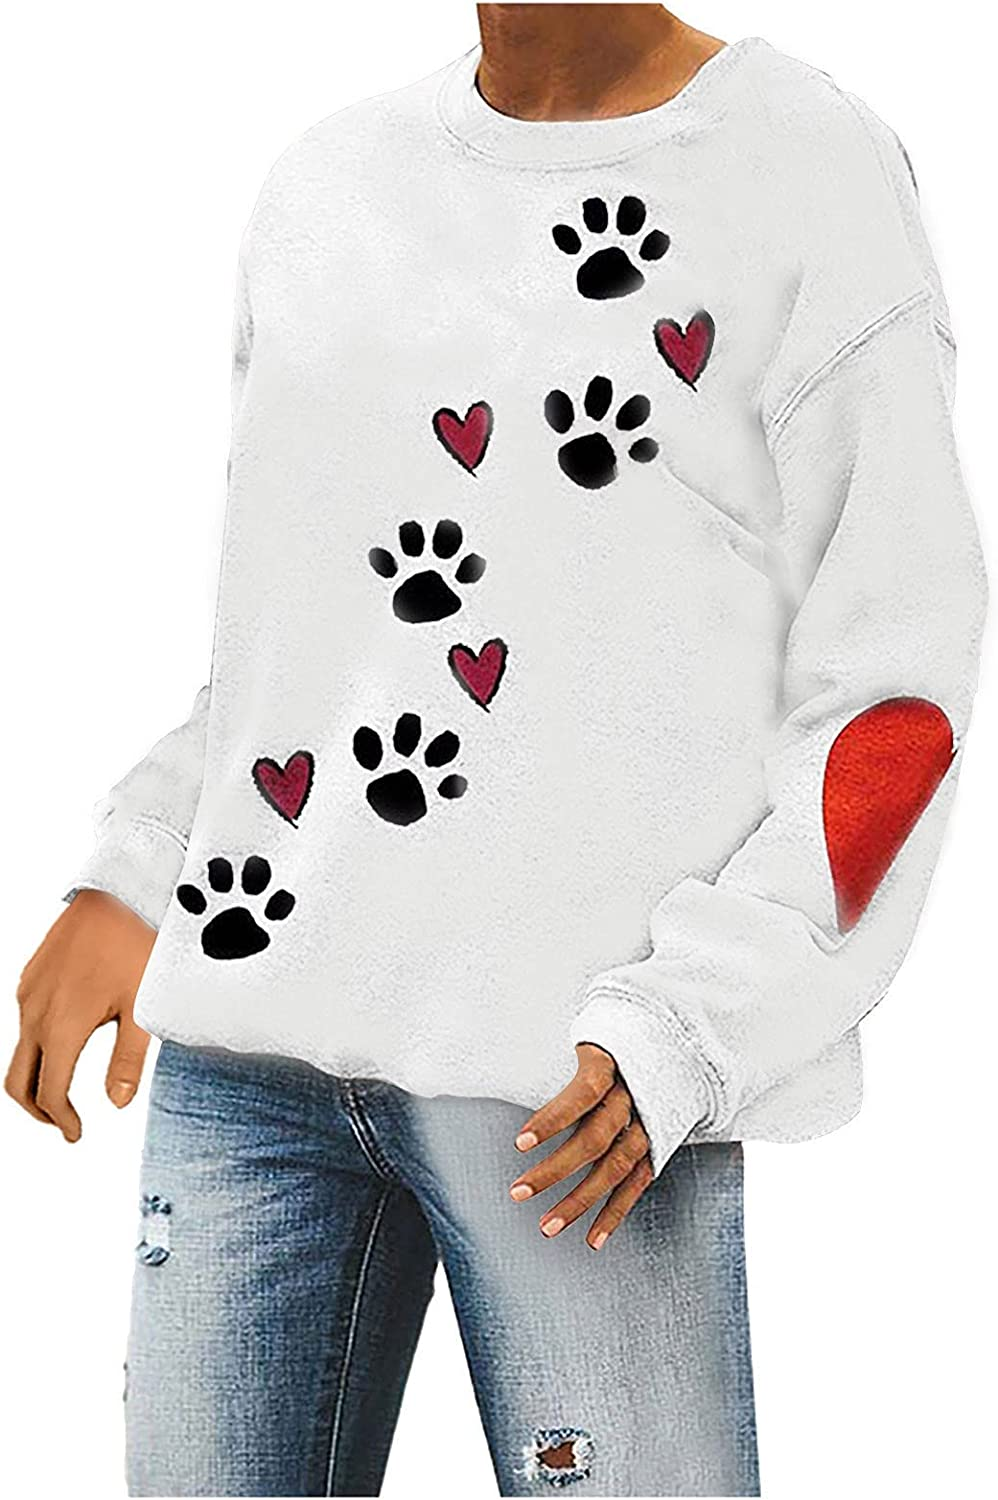 Women's Sweatshirts Pullover Crew Neck Long Sleeve Winter Tunic Tshirt Dog Paw Print Loose Fit Sweaters Jumper Tops